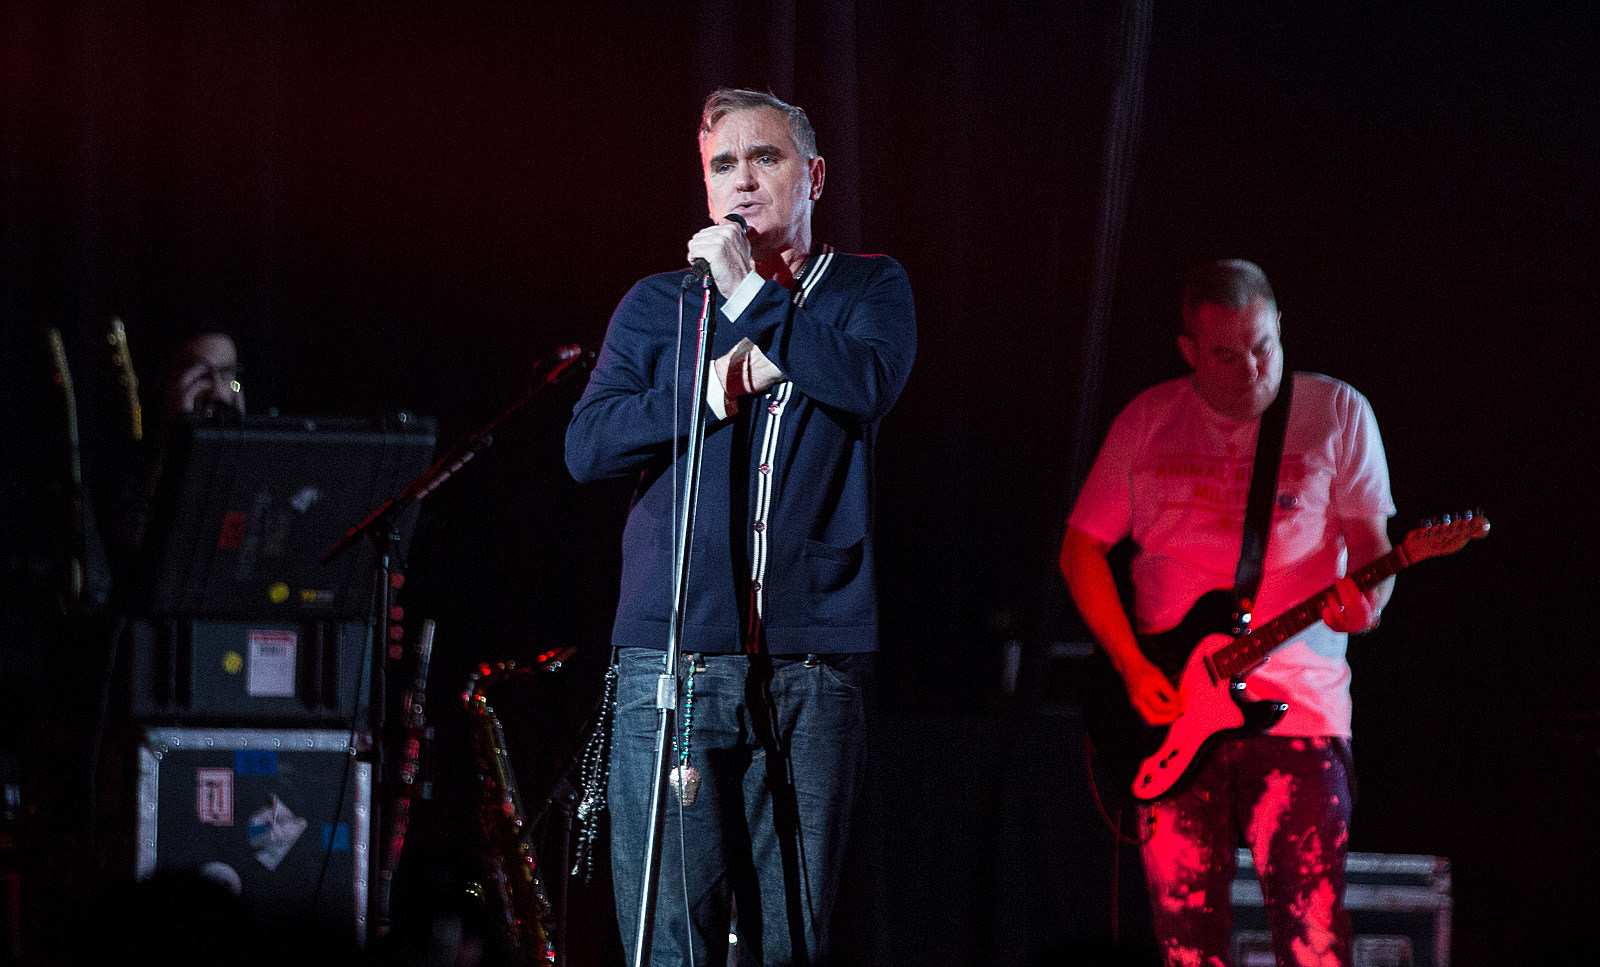 Audio of Morrissey interview with 'Der Spiegel' released, including Kevin Spacey remarks